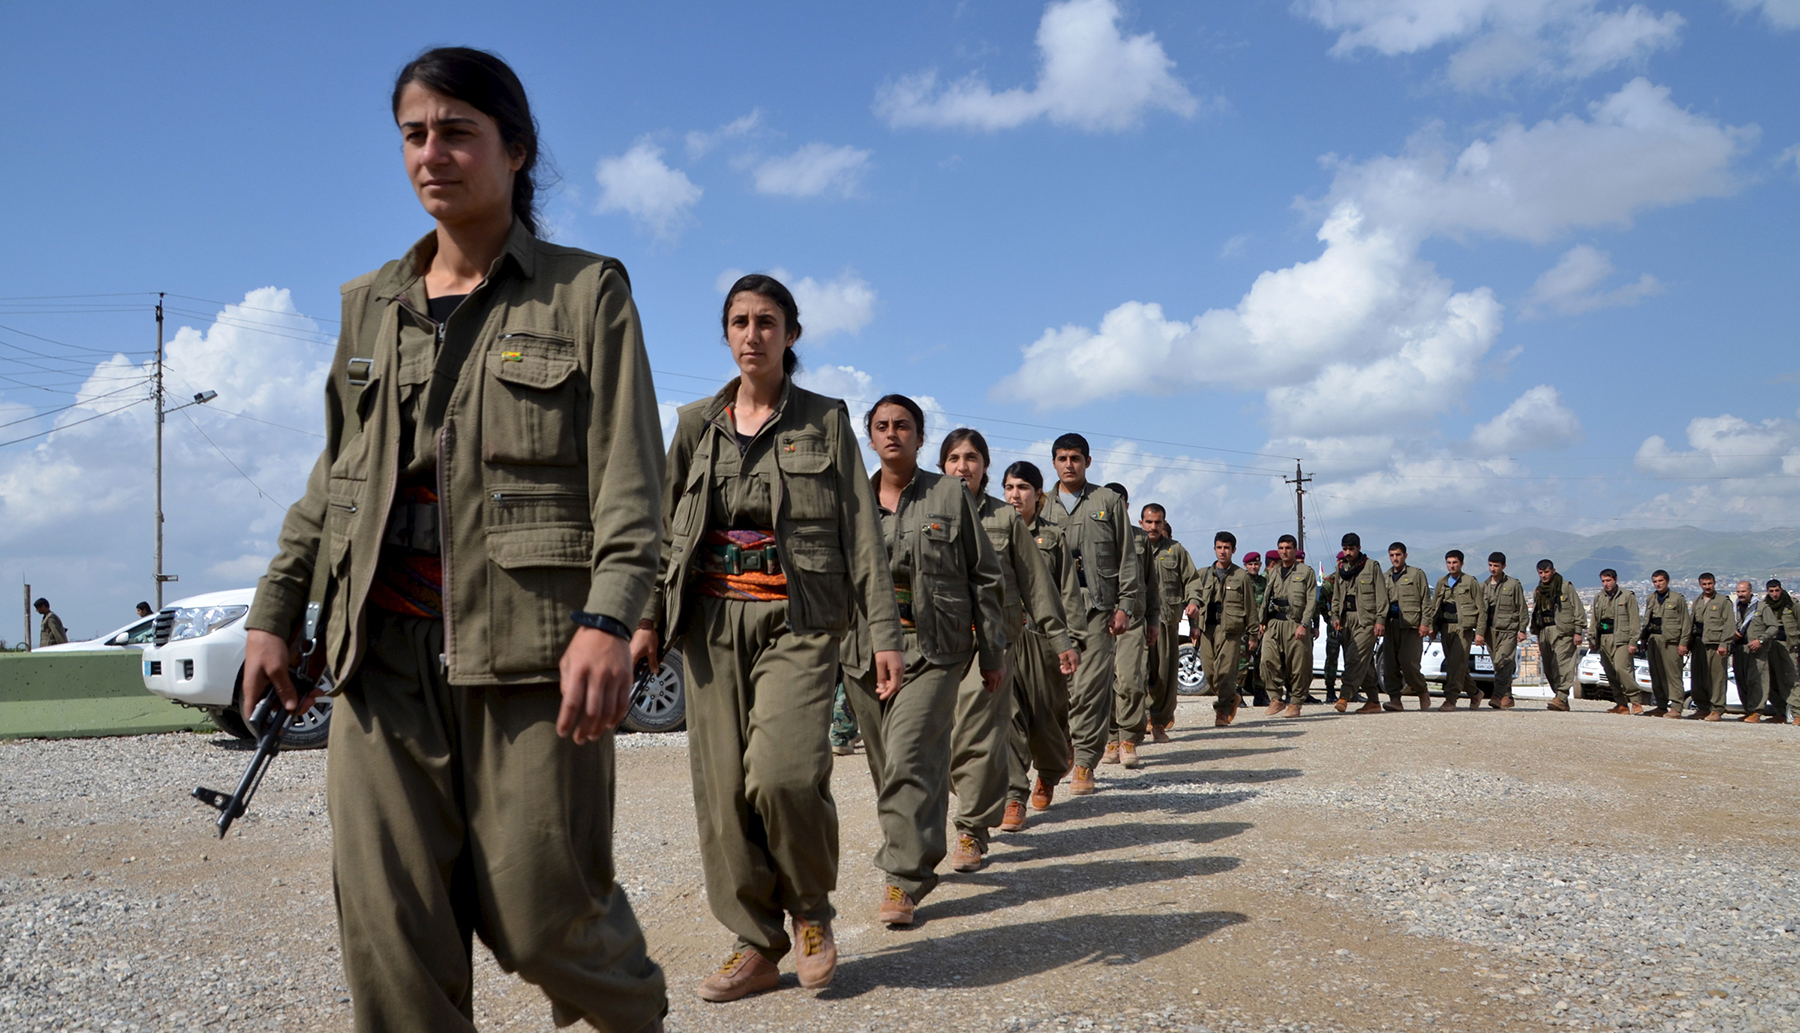 Conflict Between Turkey and Armed Kurdish Groups